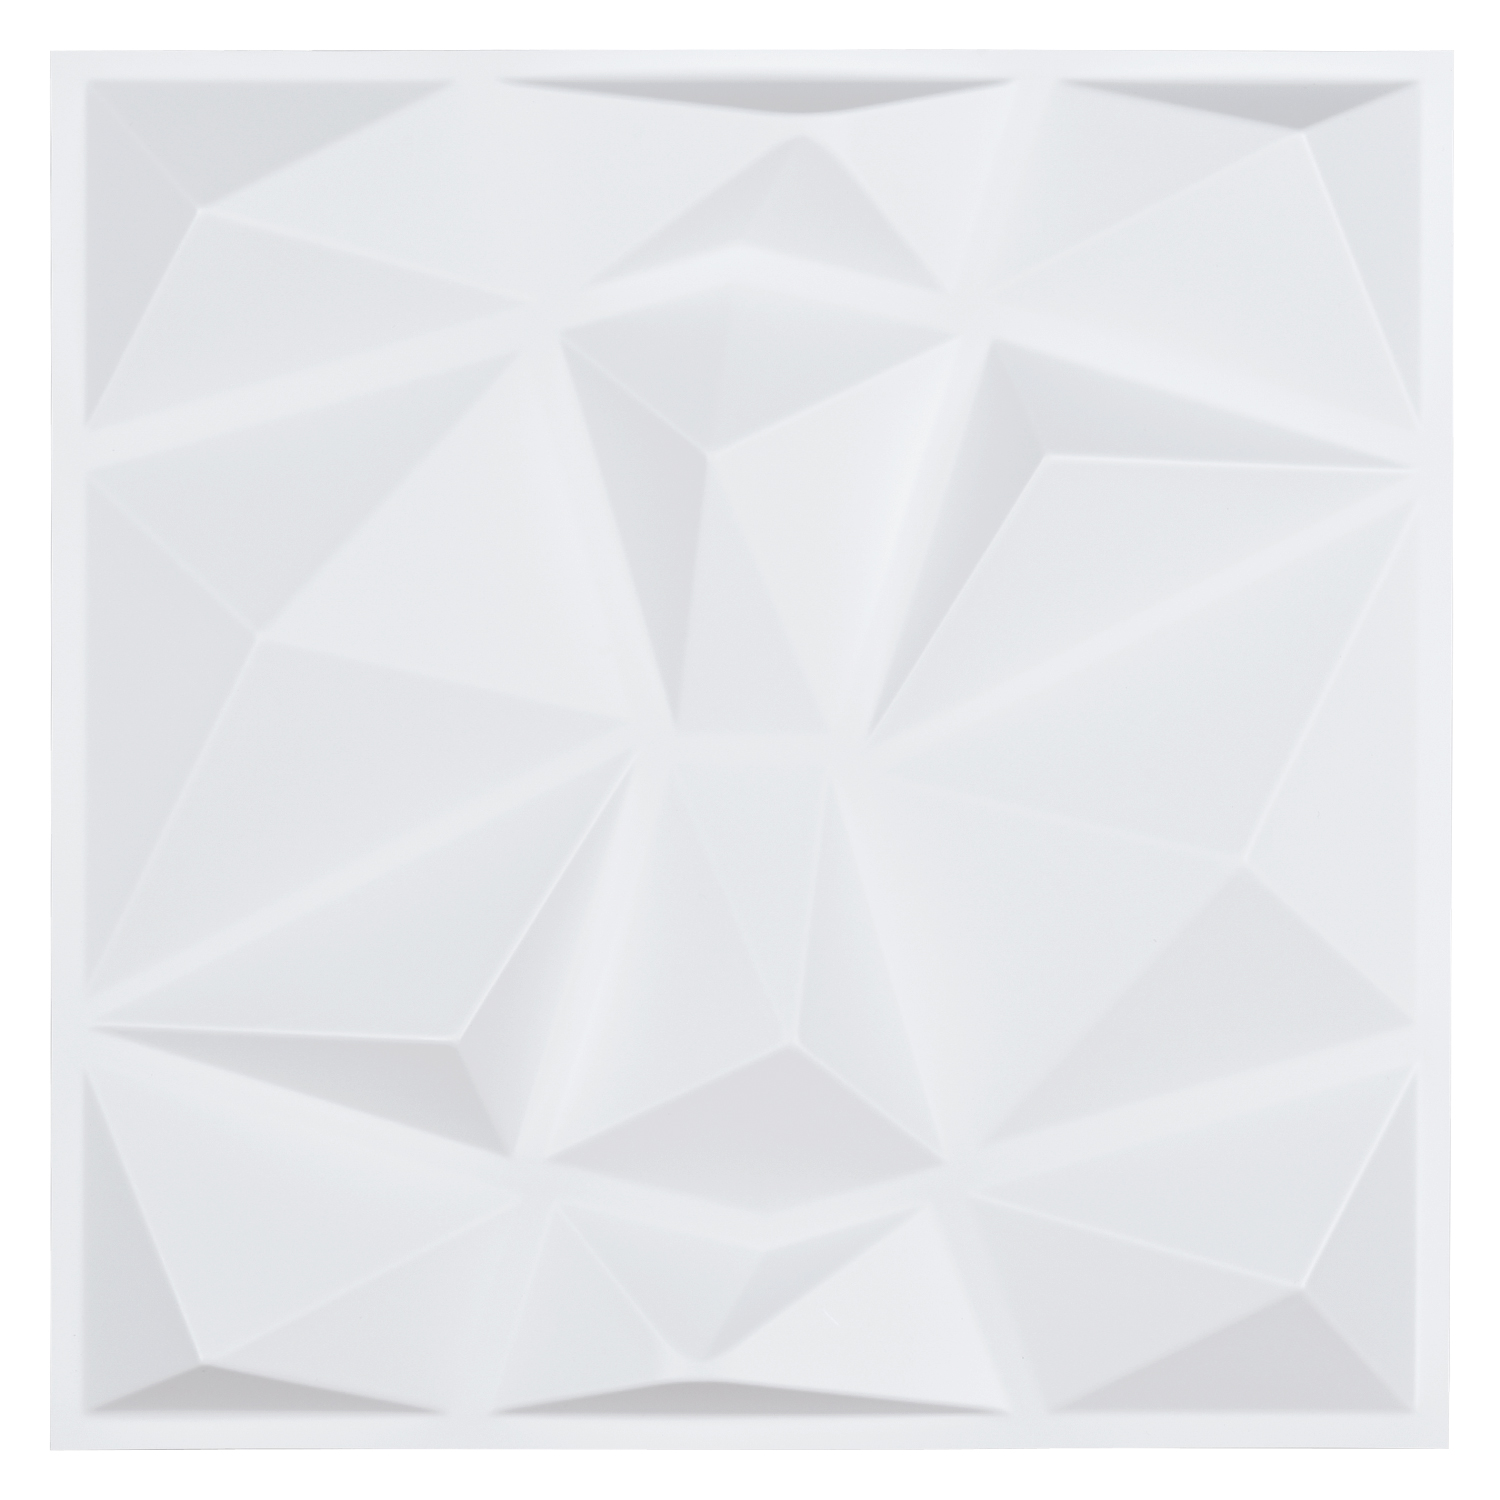 A10315 – Embossed 3D Wall Covering 1 Box 32 Sq.Ft